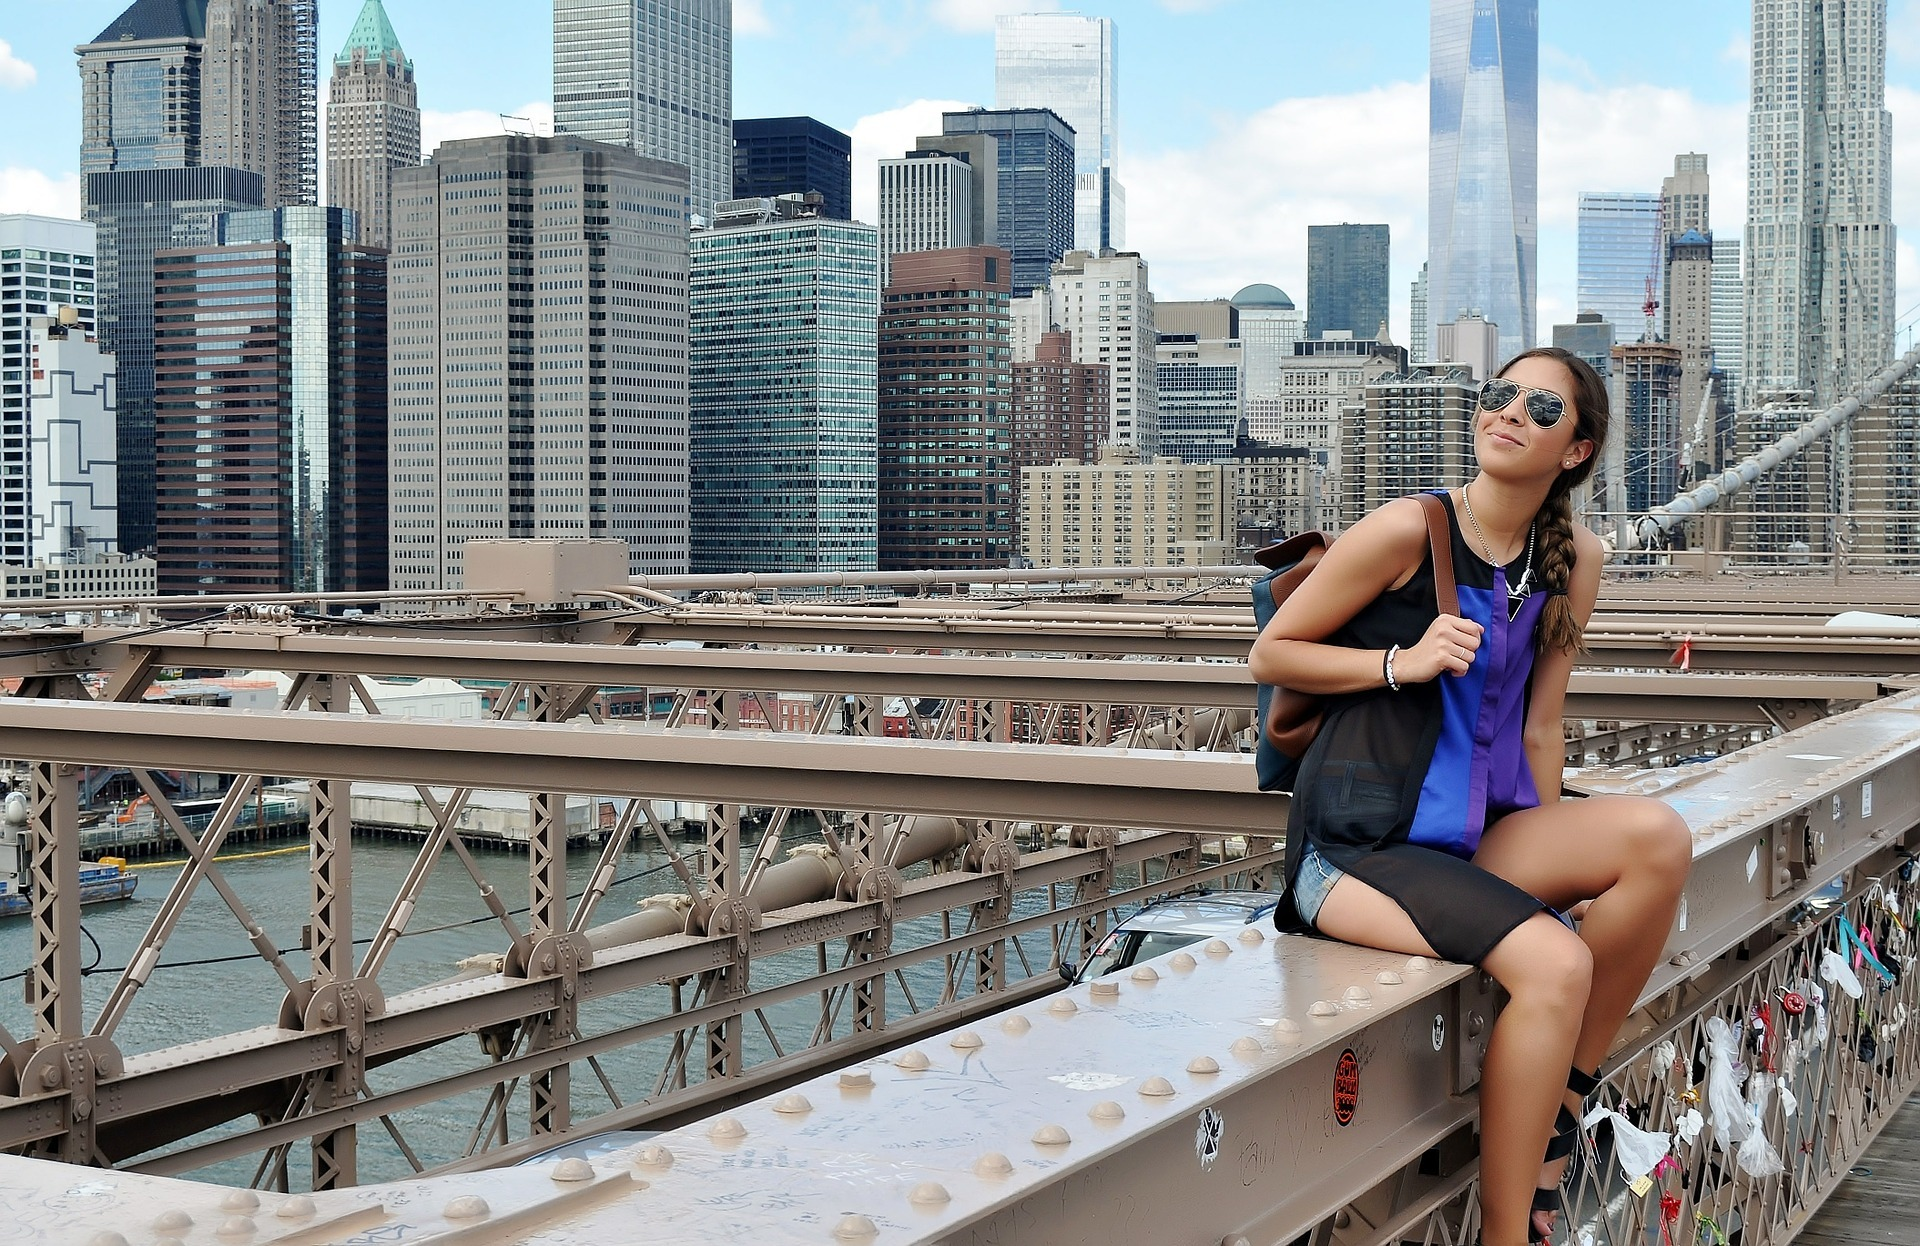 Things to do in nyc by yourself